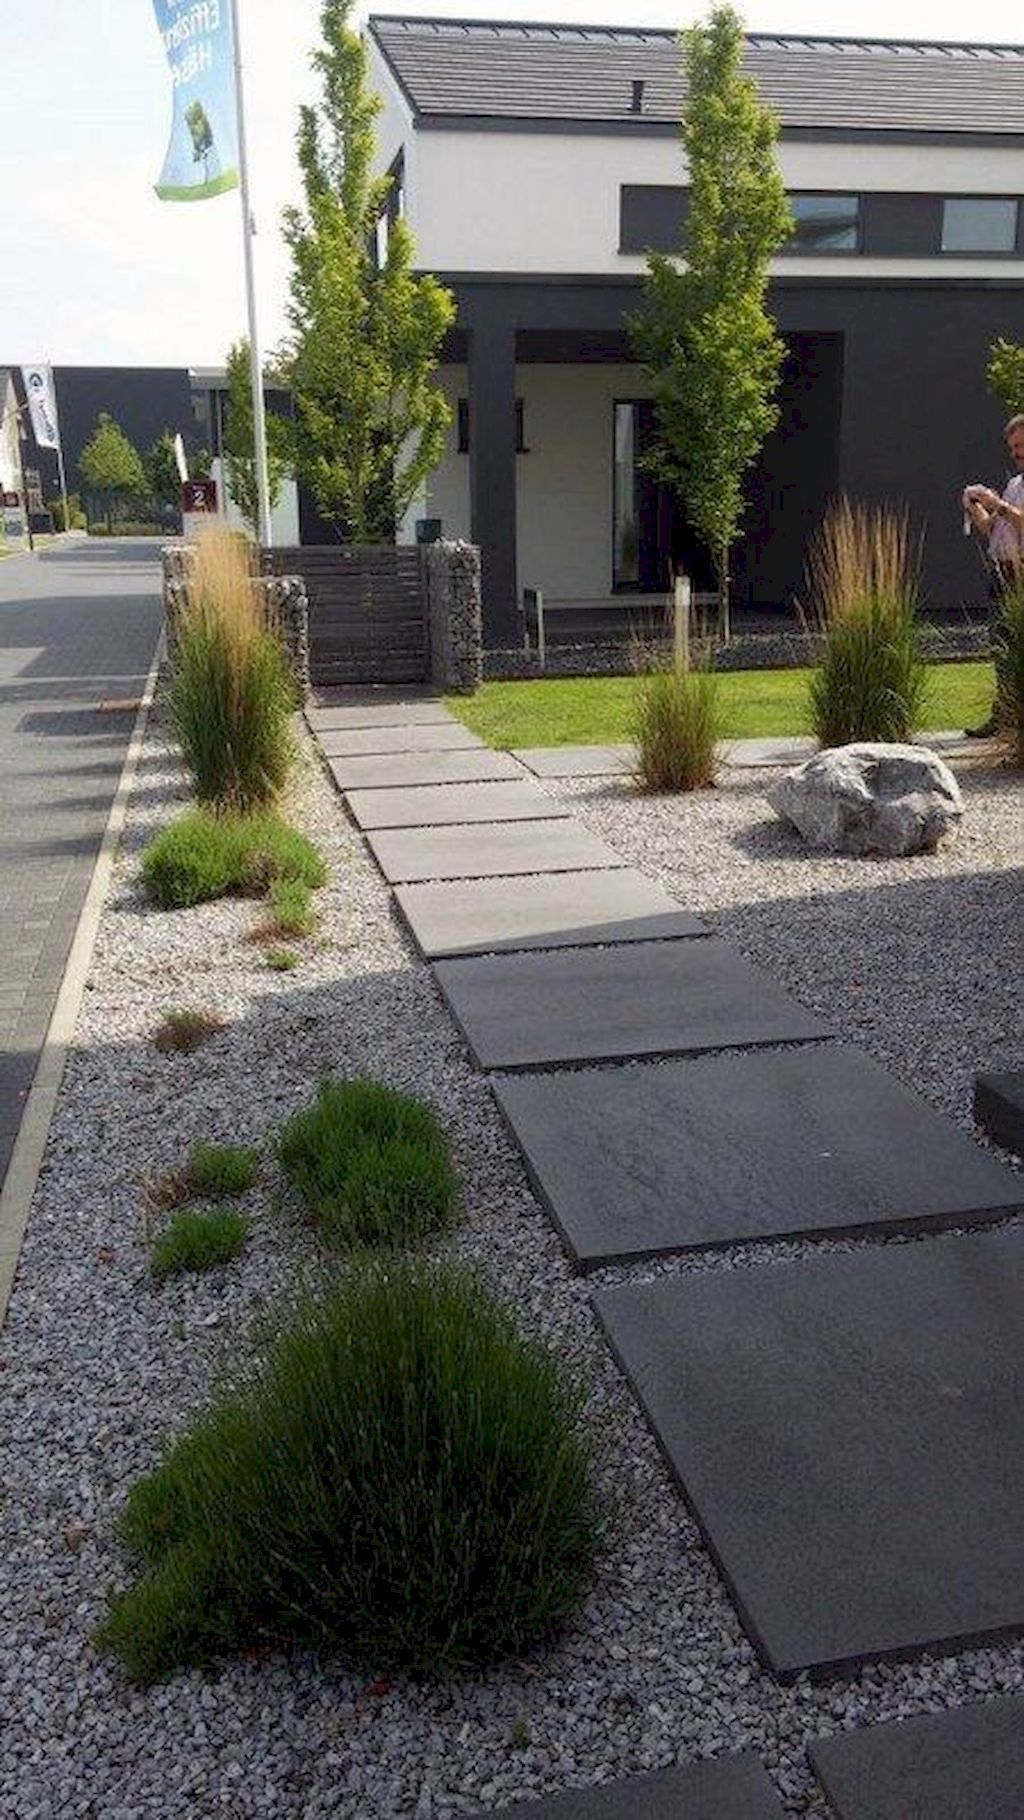 gorgeous front yard landscaping ideas can make your home extra eye